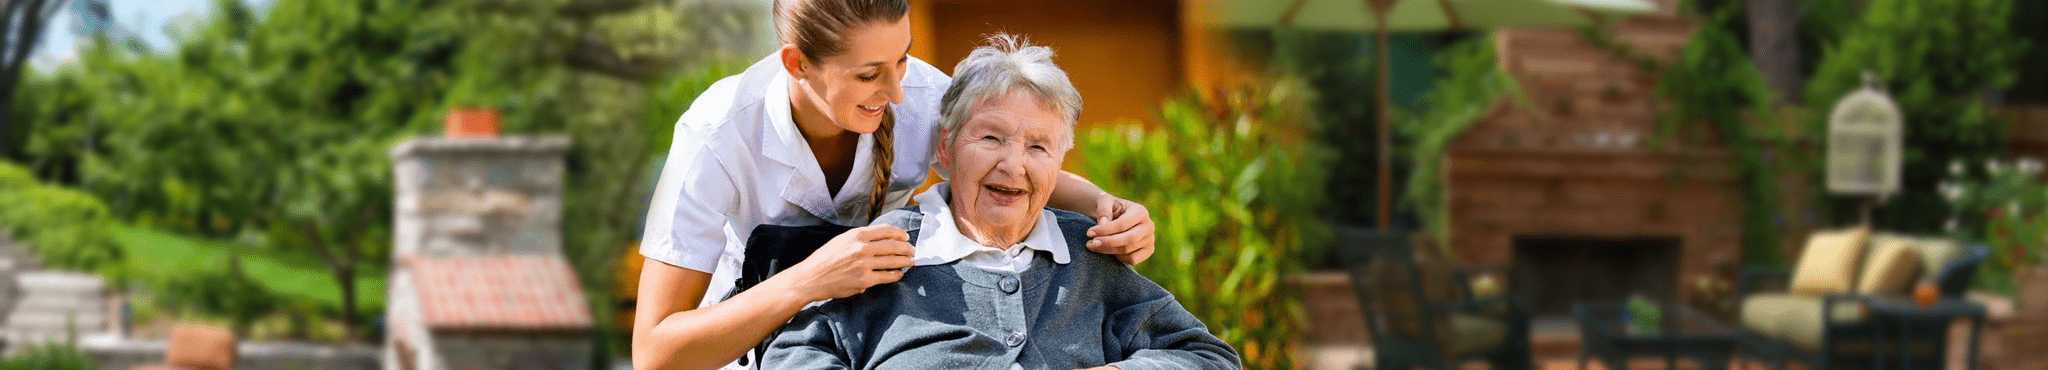 AlzheimerT¦Цйs & Dementia Care-min